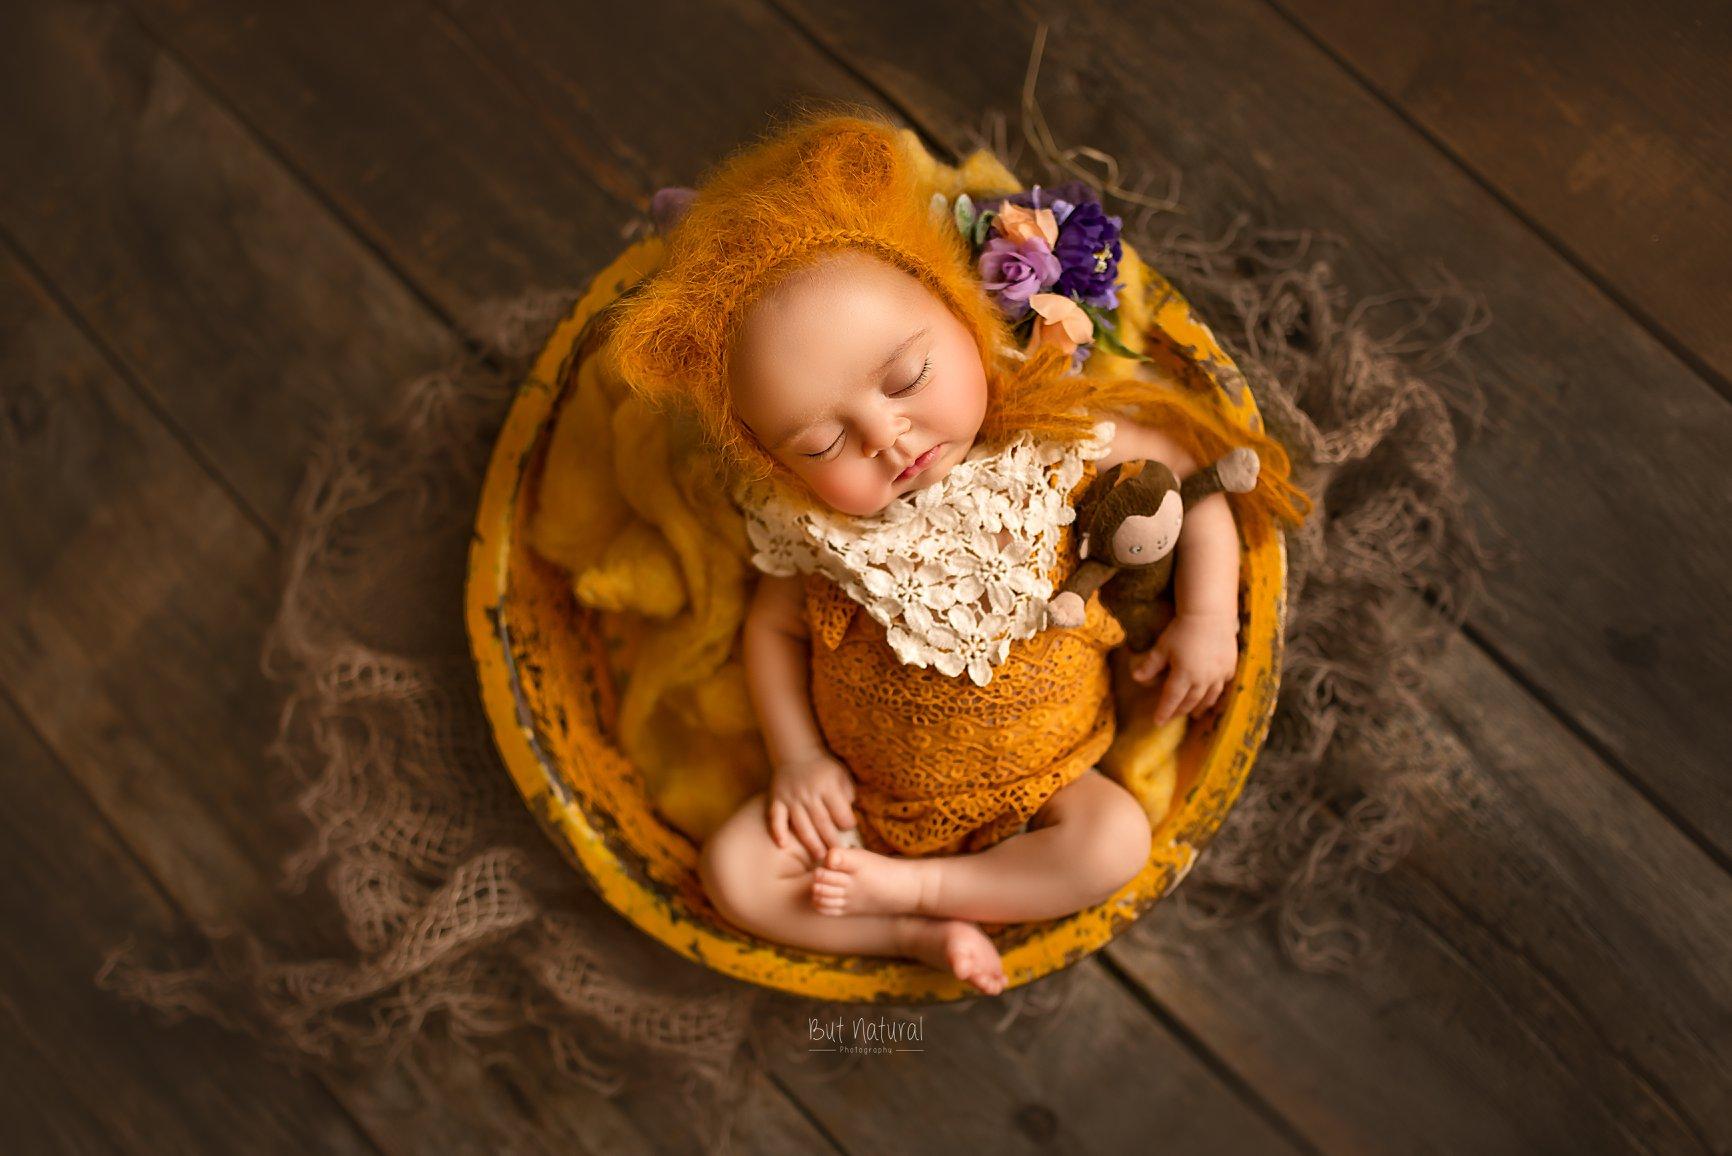 Newborn baby sleeping round-shaped prop for newborn photography session | But Natural Photography, Sujata Setia